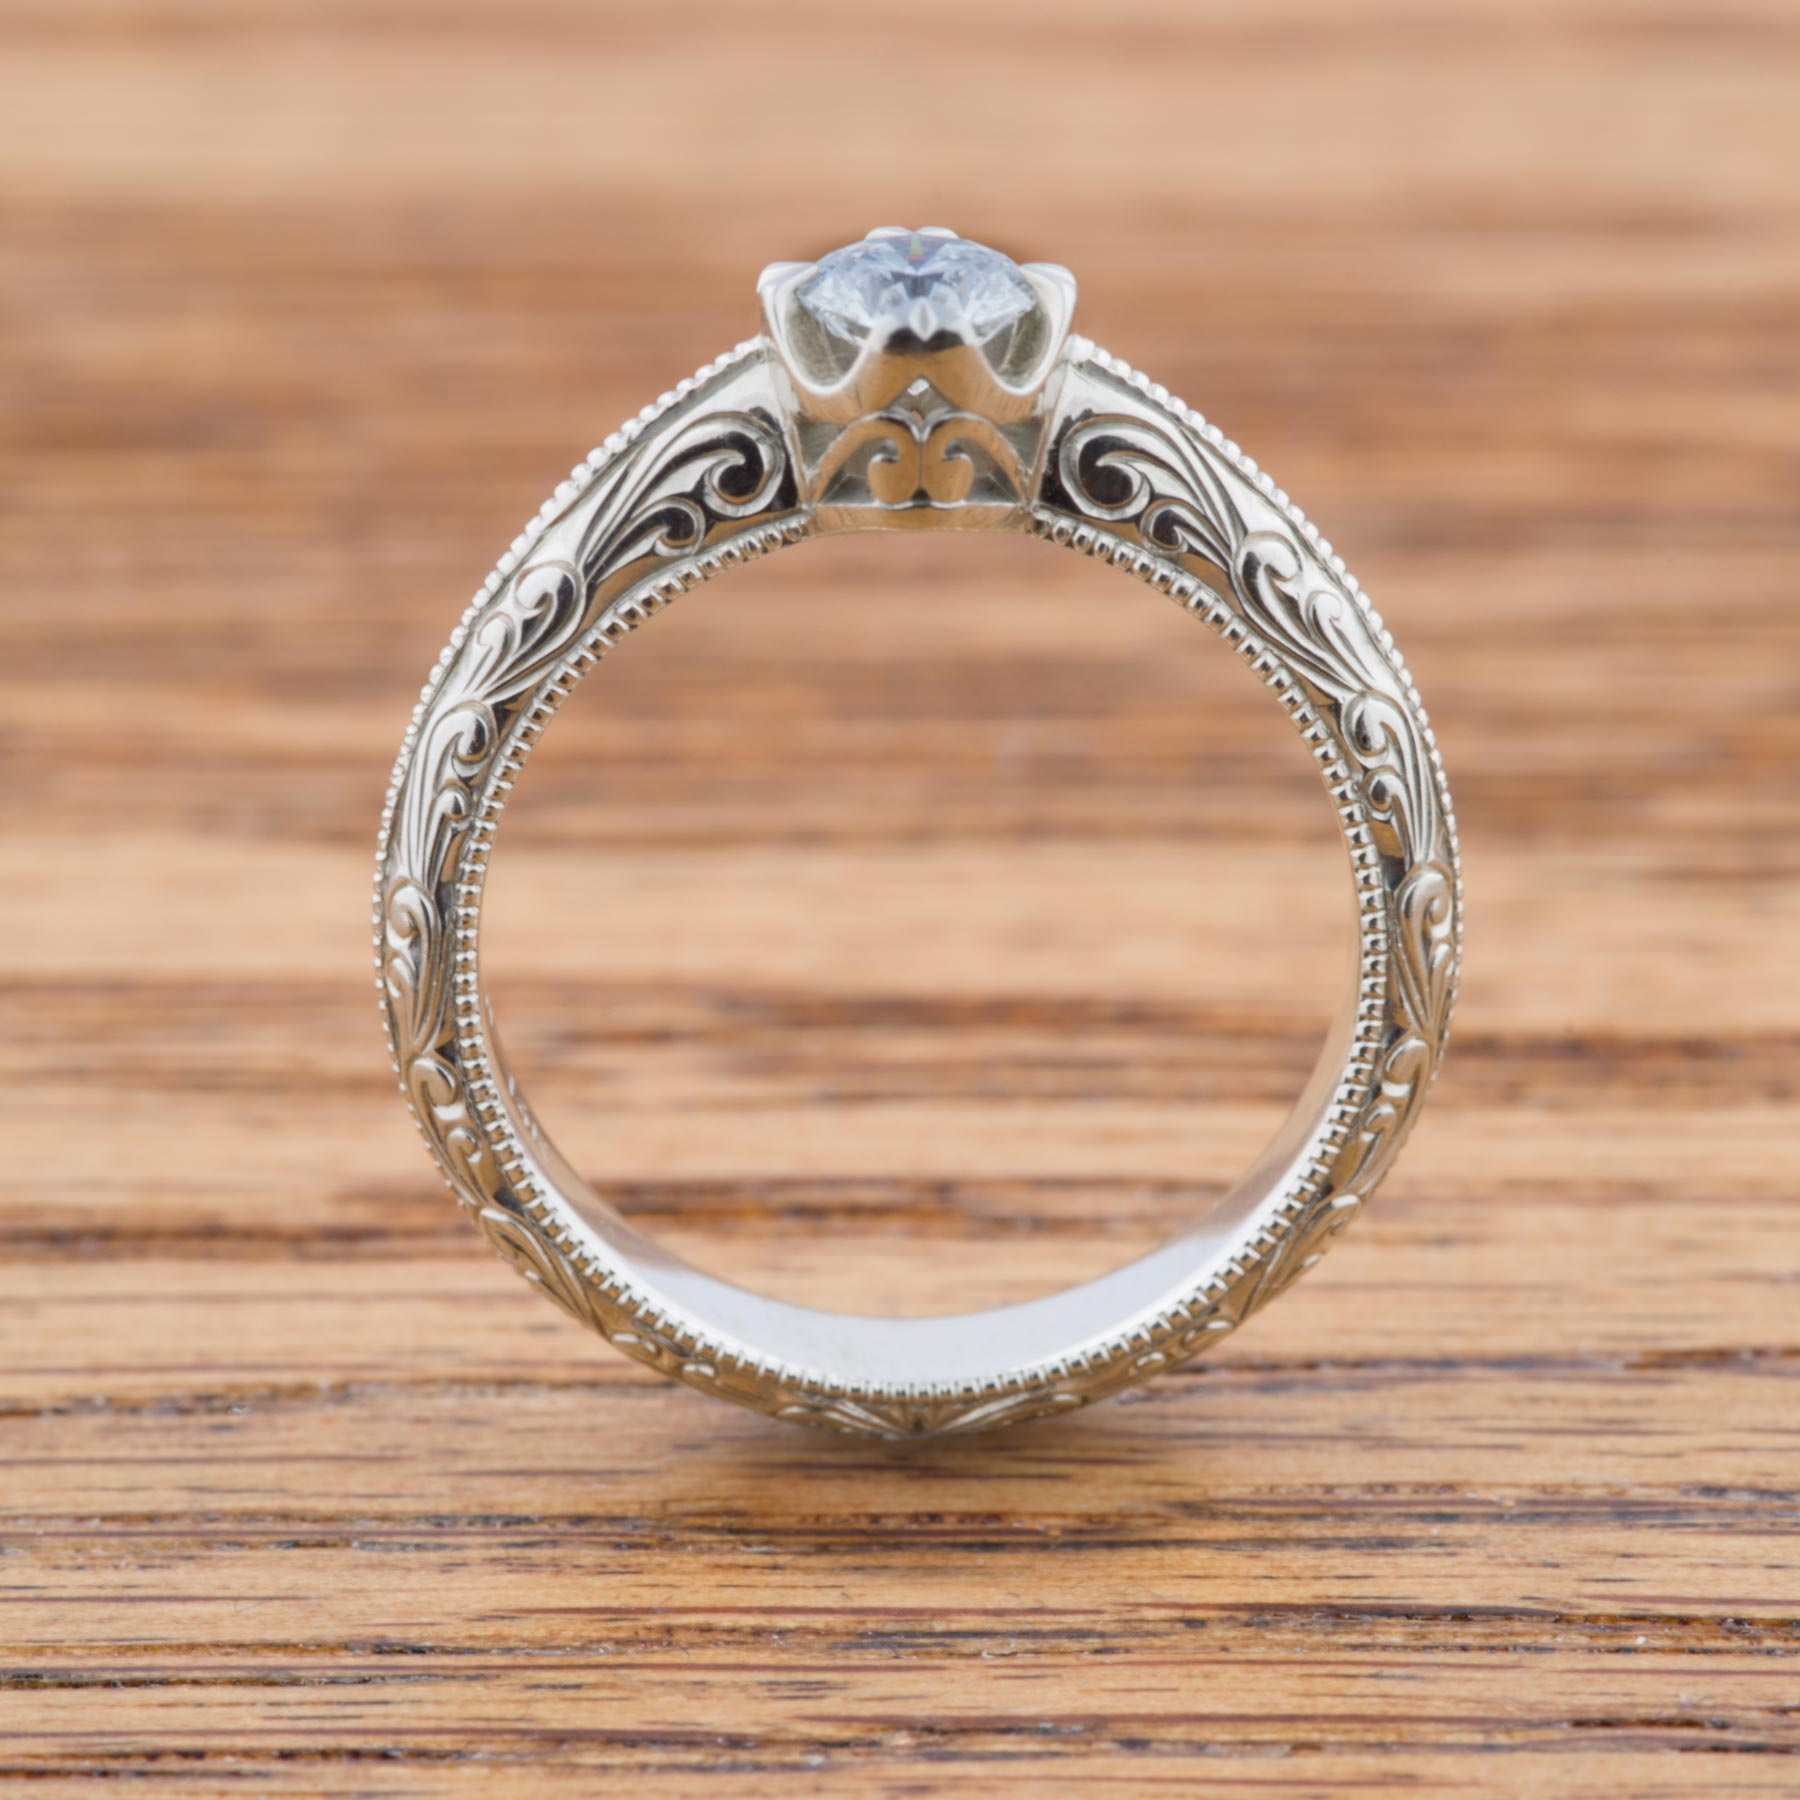 Compass Canadian Diamond Engagement Ring | Era Design Vancouver Canada